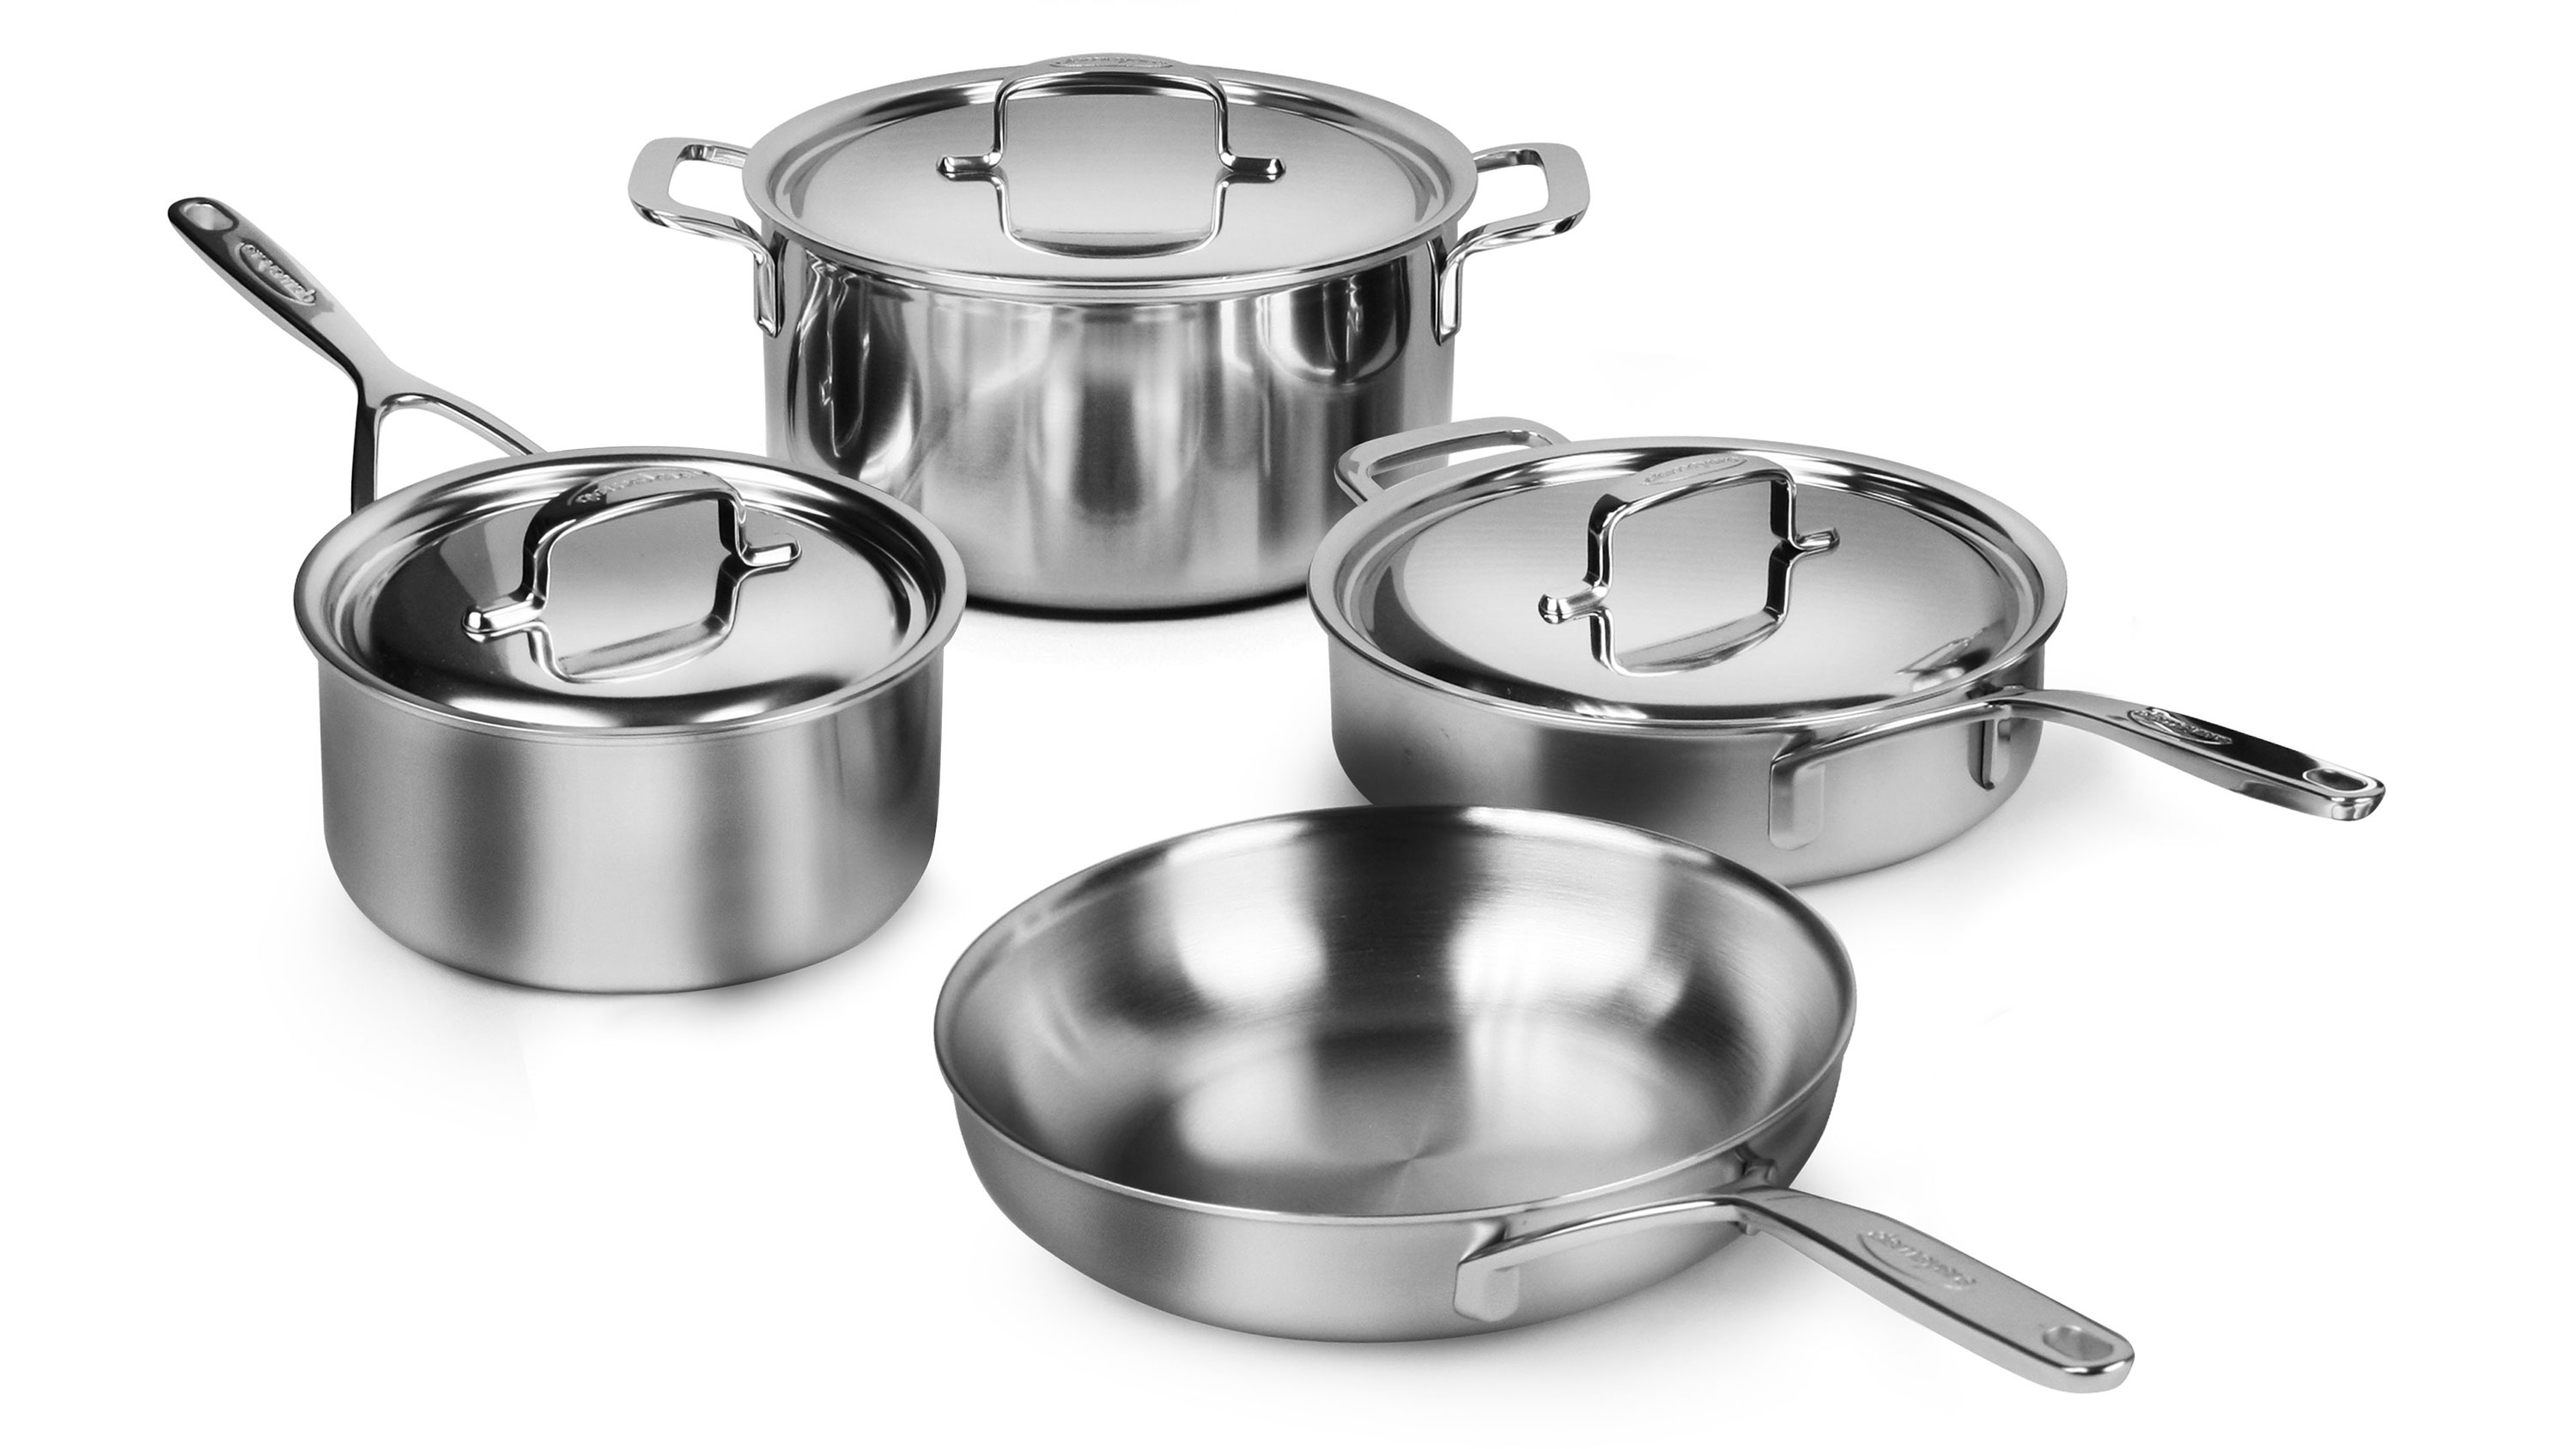 Demeyere Cookware Set 5 Ply Stainless Steel 5 Plus Pots